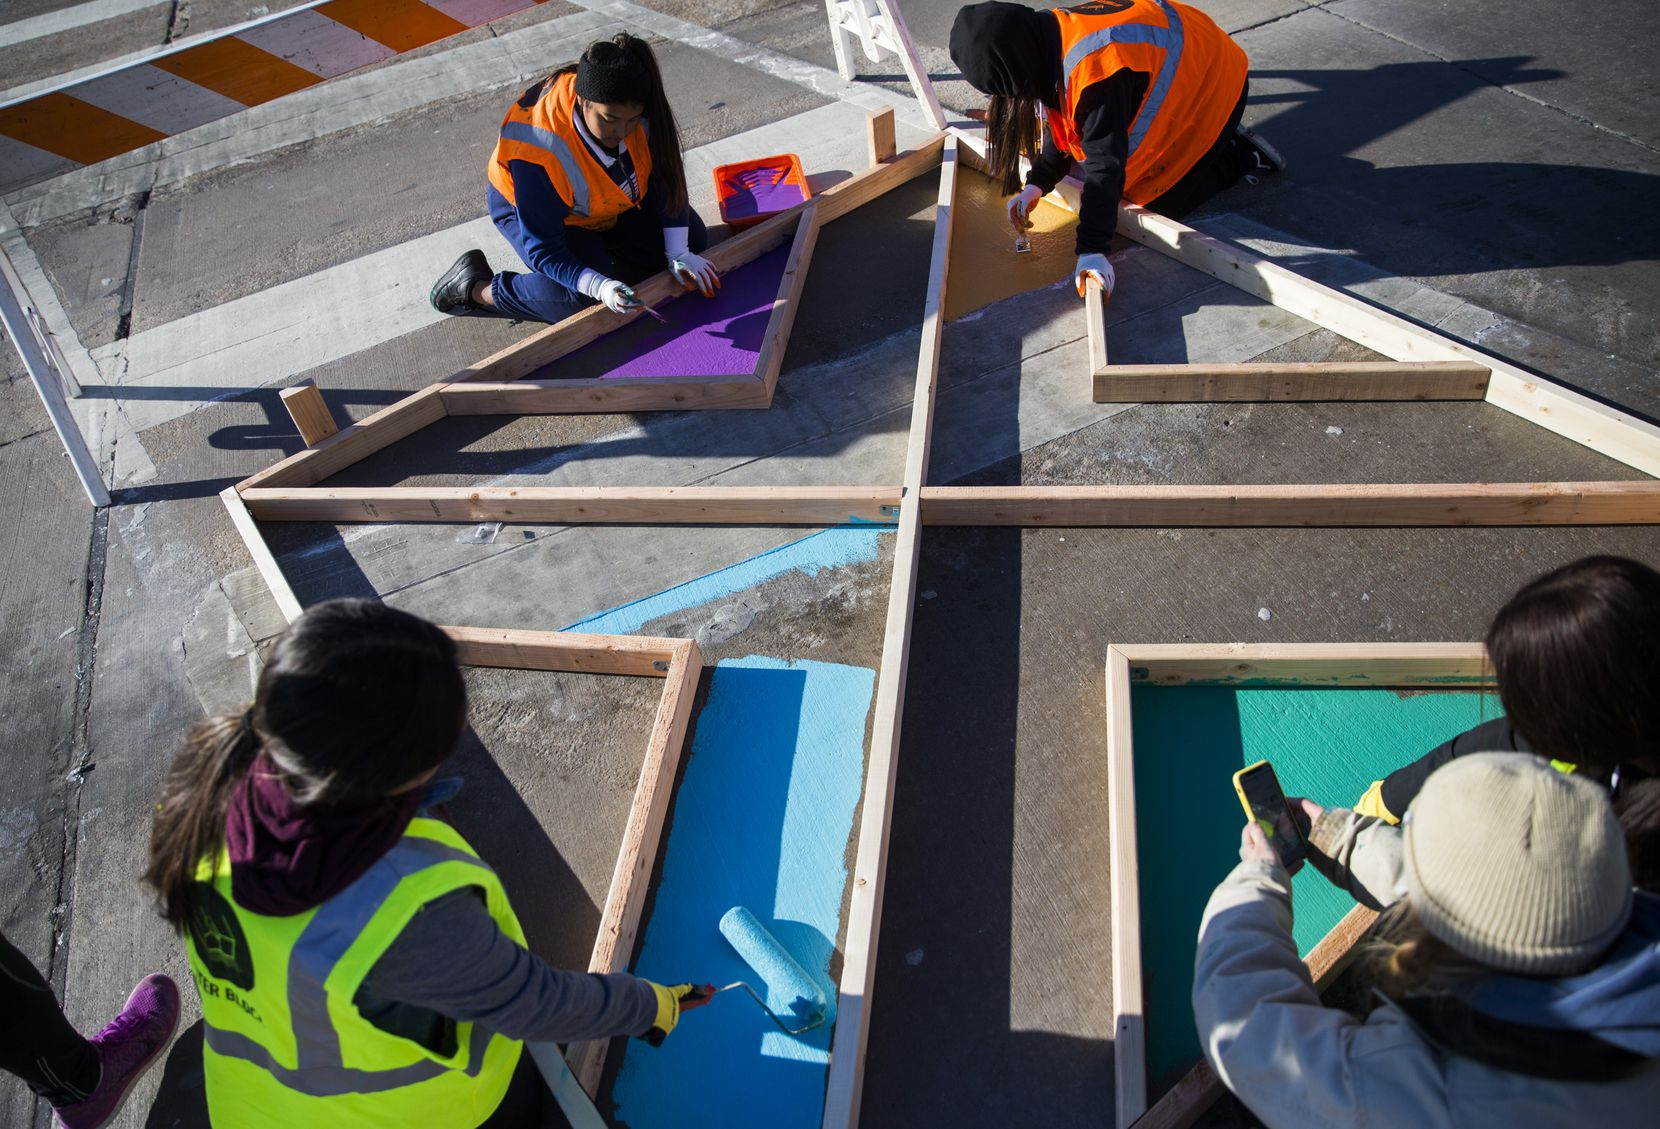 Yamilet Chavez, 13, (clockwise, from bottom left), Melanie Aguillar, 13, (top left), Sherlyn Hernandez, 13, (top right), and Sharely Vences, 13, (right), paint a crosswalk as part of Better Block's effort to transform the Five Points intersection on Thursday.